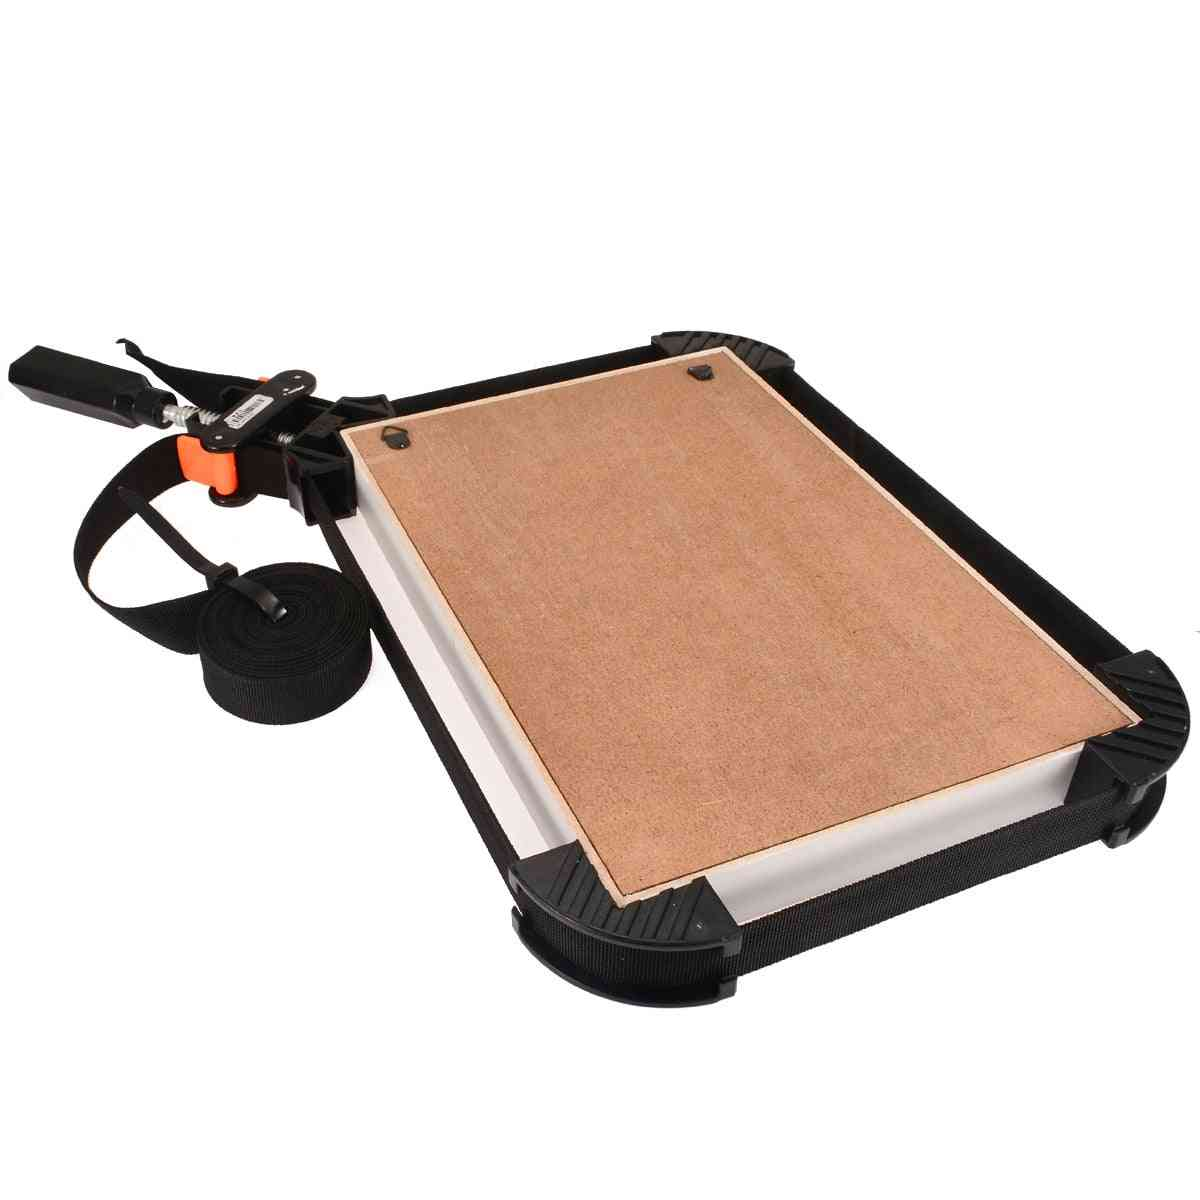 Adjustable Rapid Corner Clamp With 4 Jaws - Picture Photo Frame, Drawer Corner, Woodworking Tool